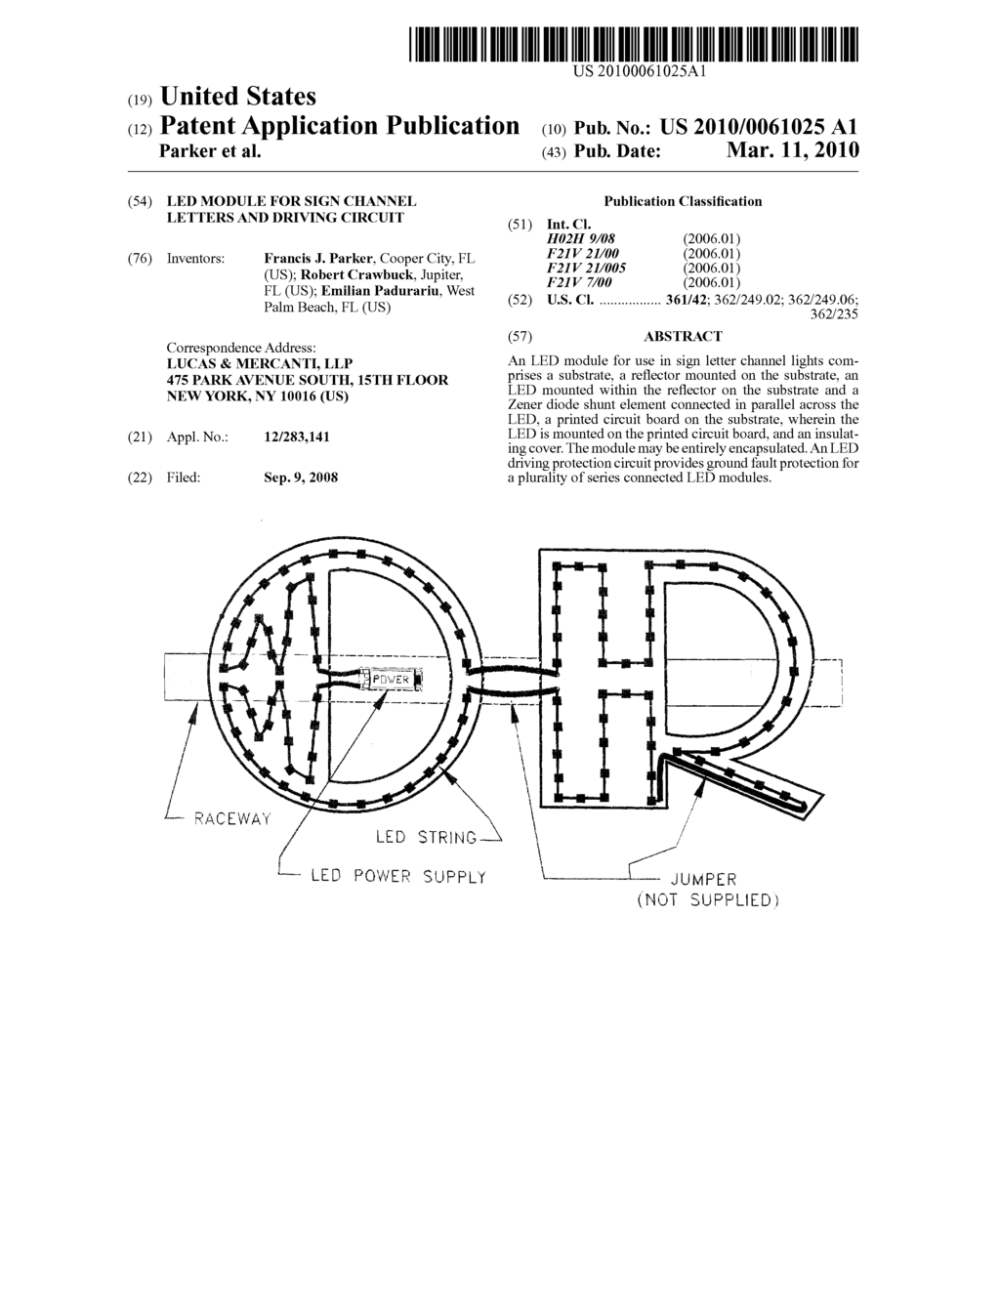 medium resolution of led module for sign channel letters and driving circuit diagram schematic and image 01